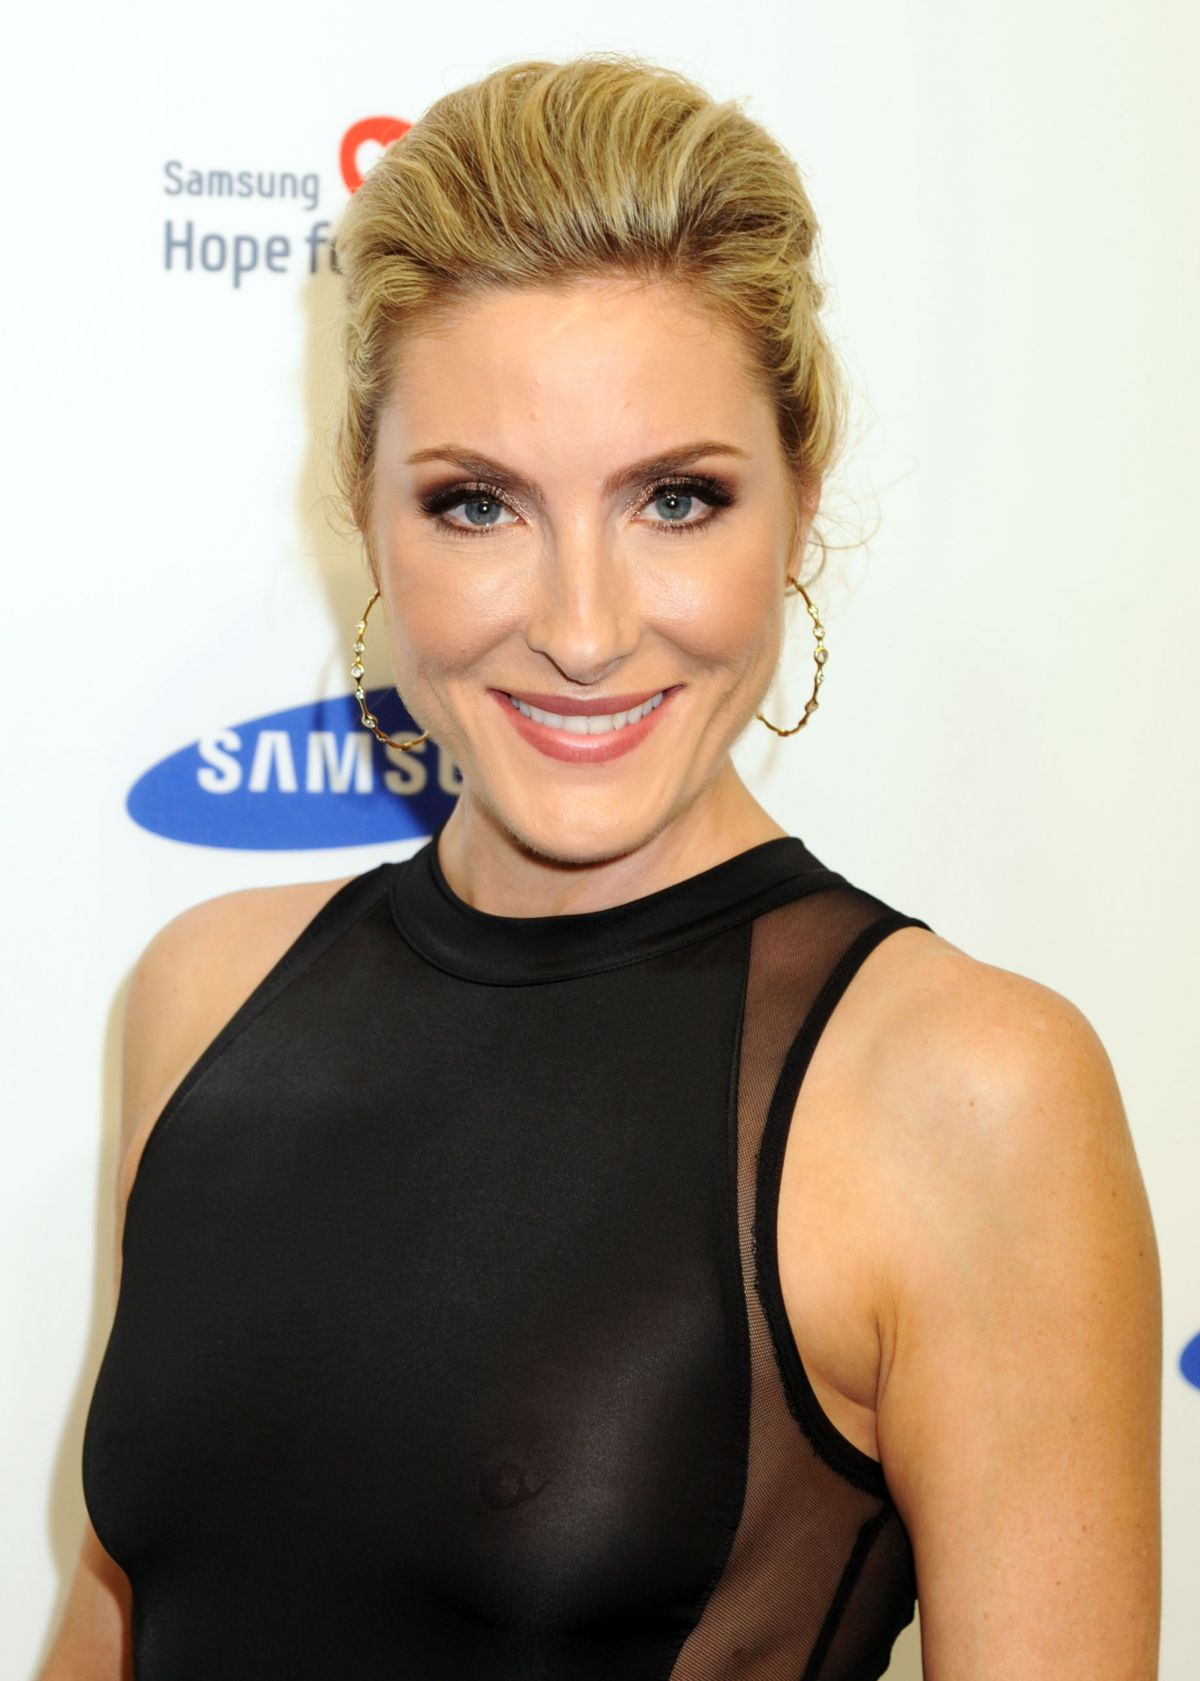 ERIN GILBERT at Samsung Hope for Children Gala in New York